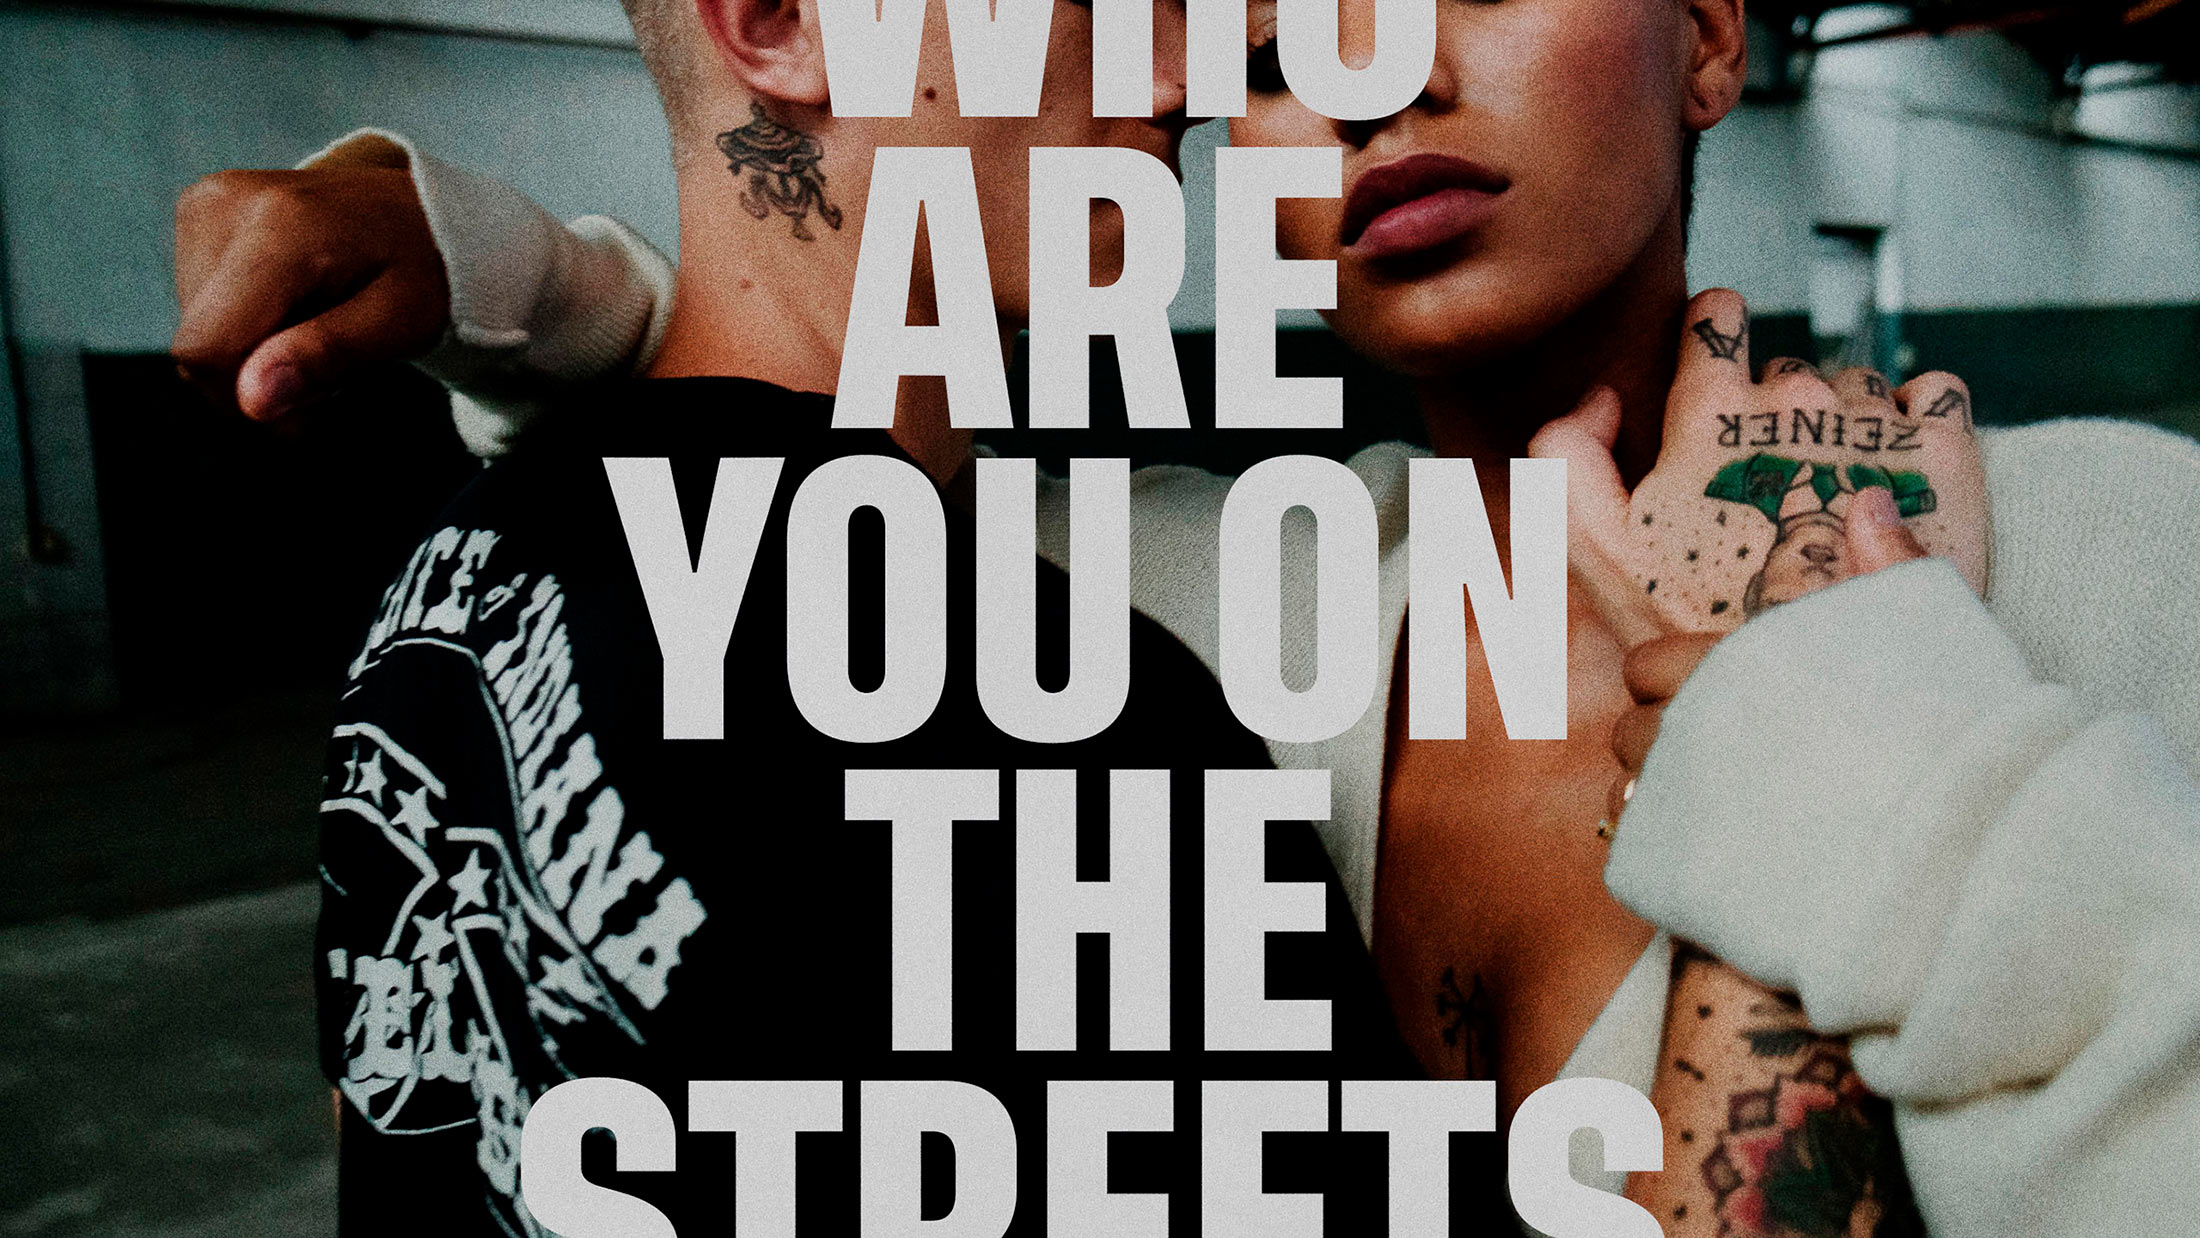 who are you on the streets?